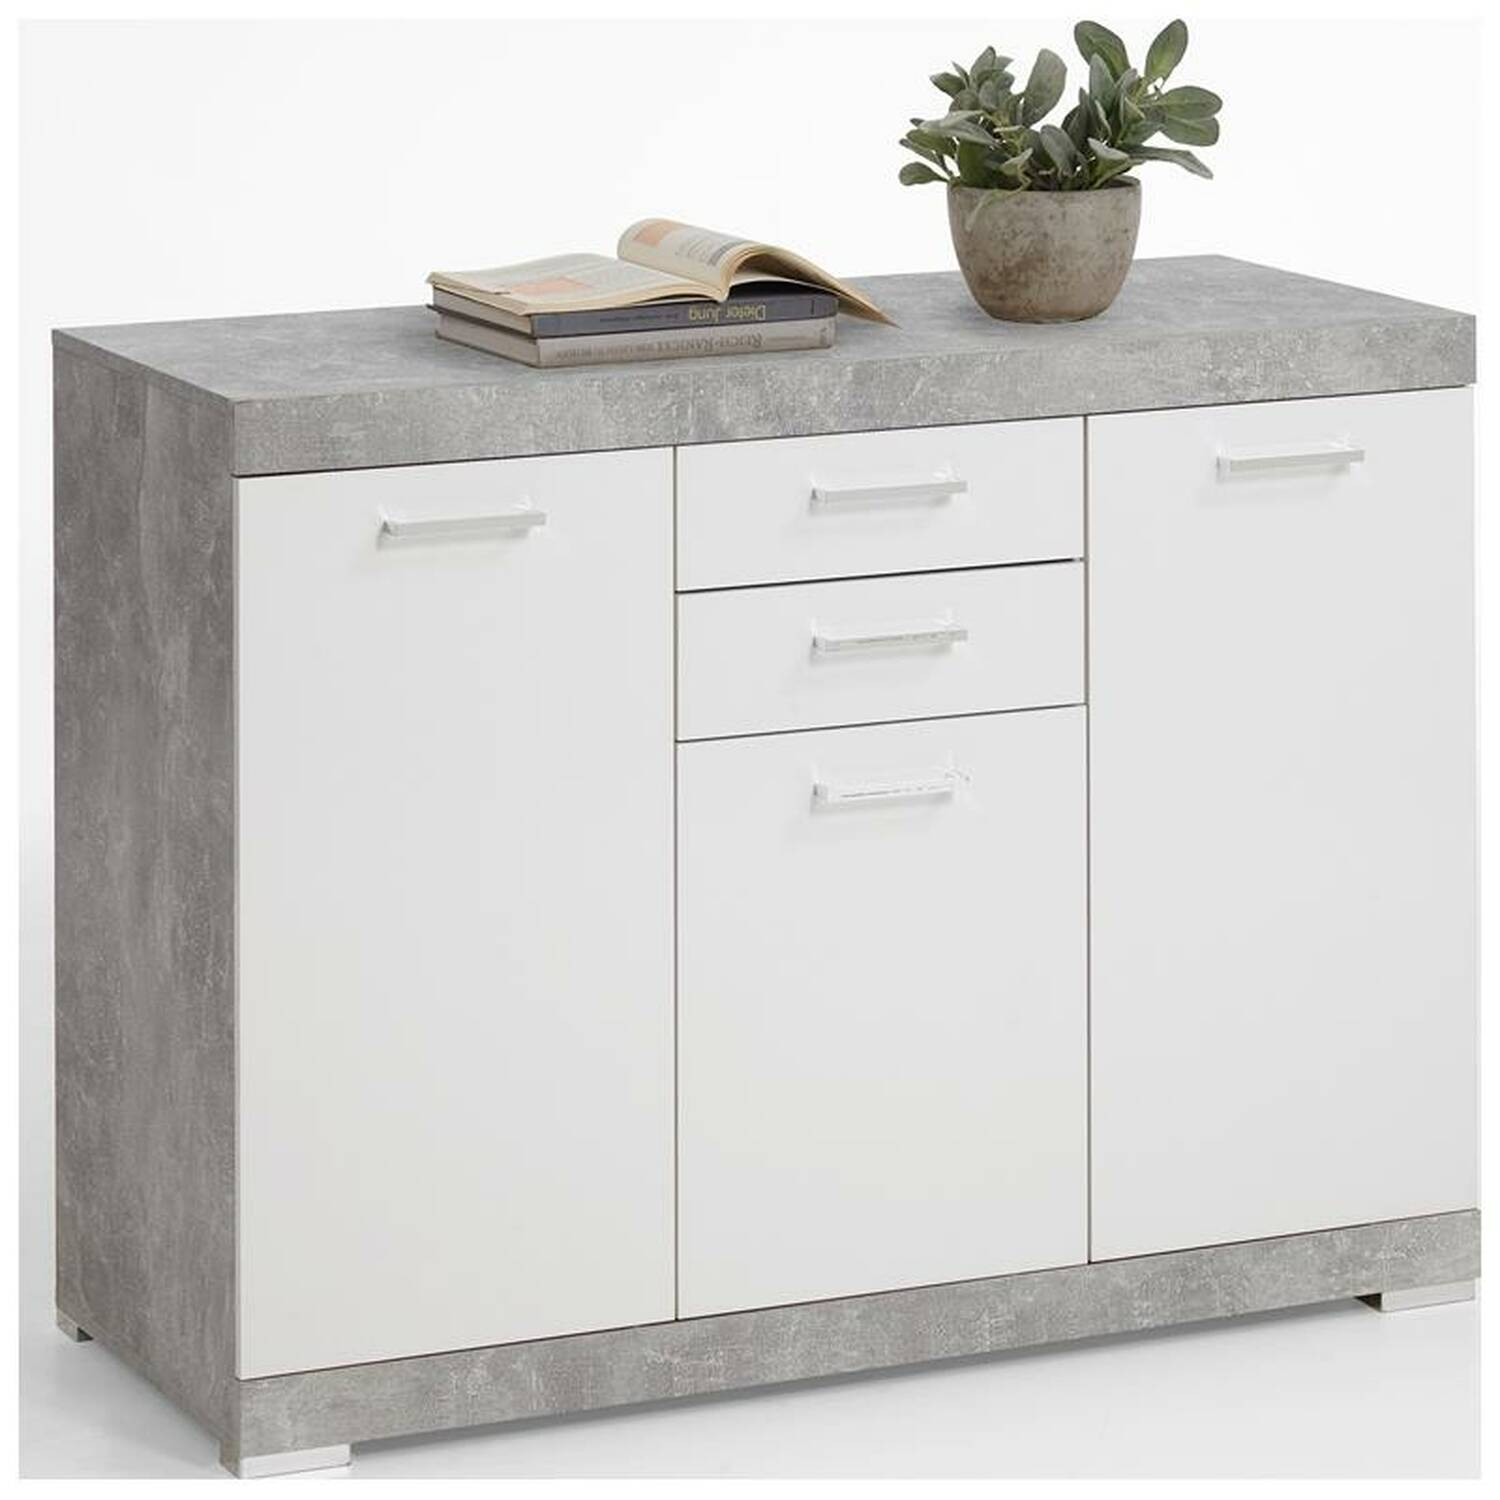 kommode sideboard beton nb wei edelglanz mit 3 t ren und. Black Bedroom Furniture Sets. Home Design Ideas